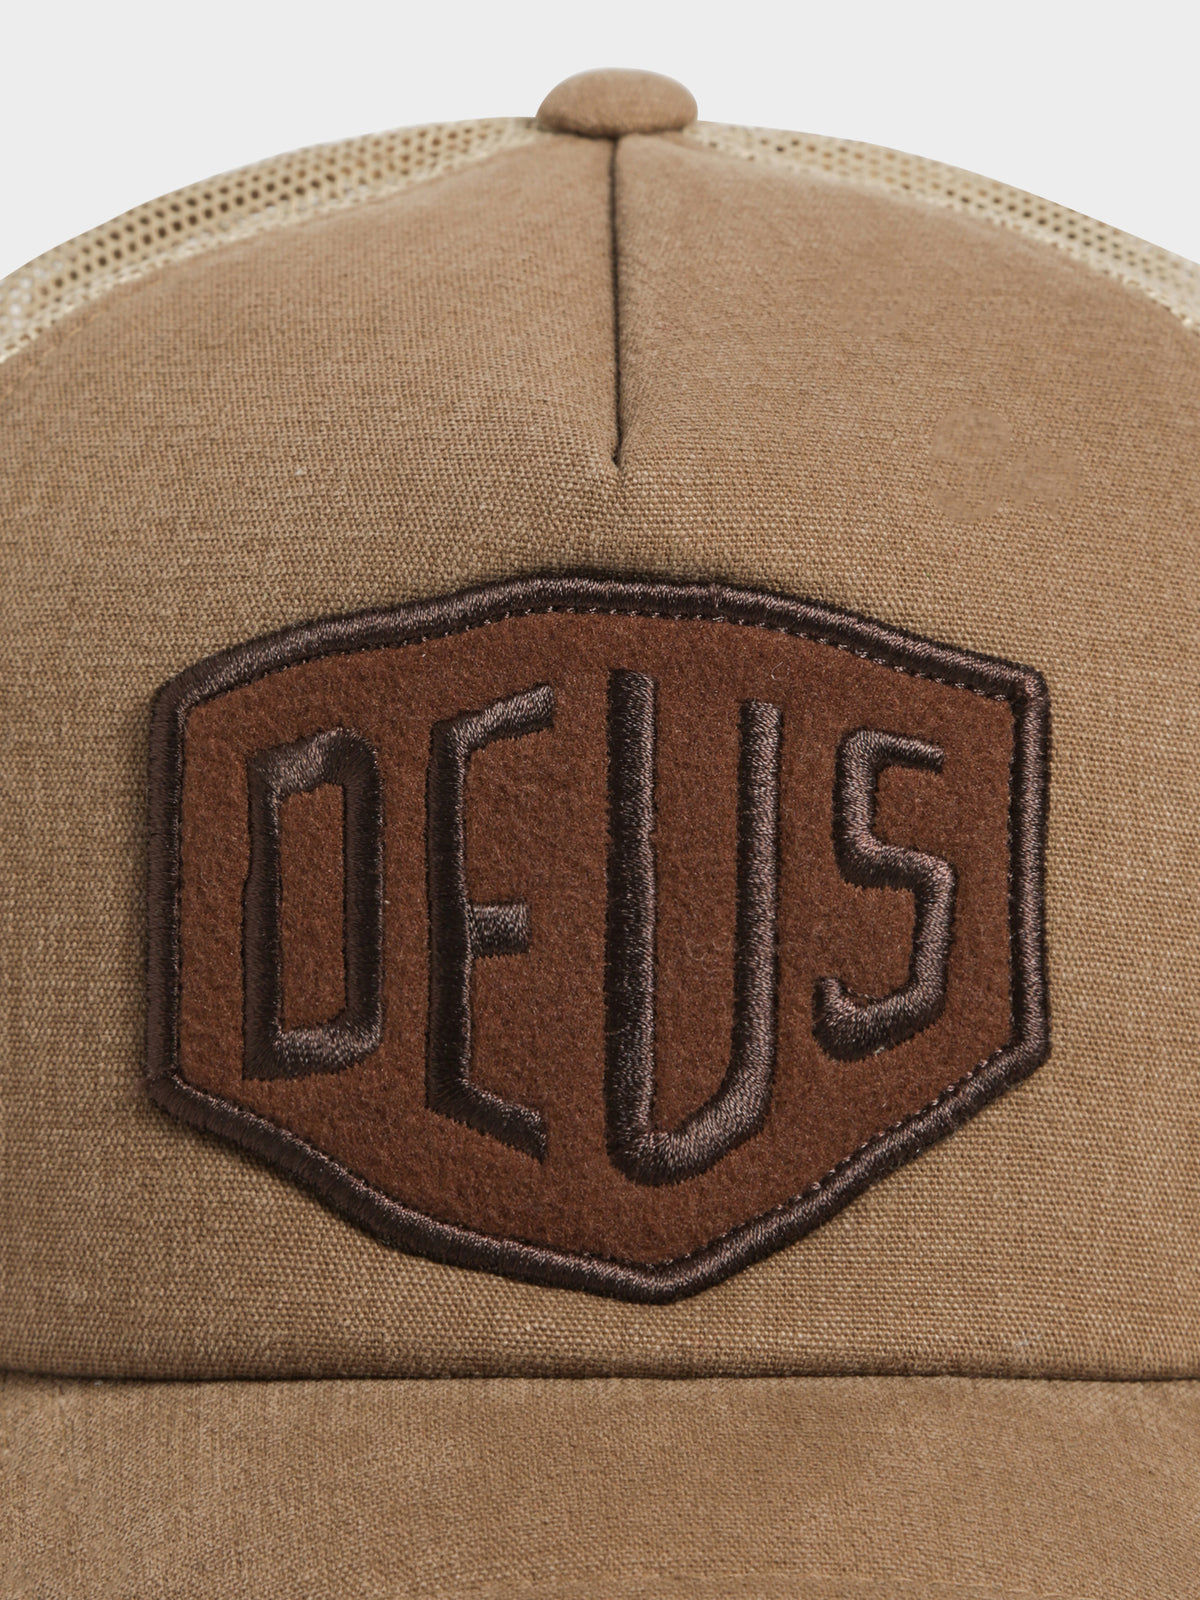 Fleece Shield Trucker Cap in Tan